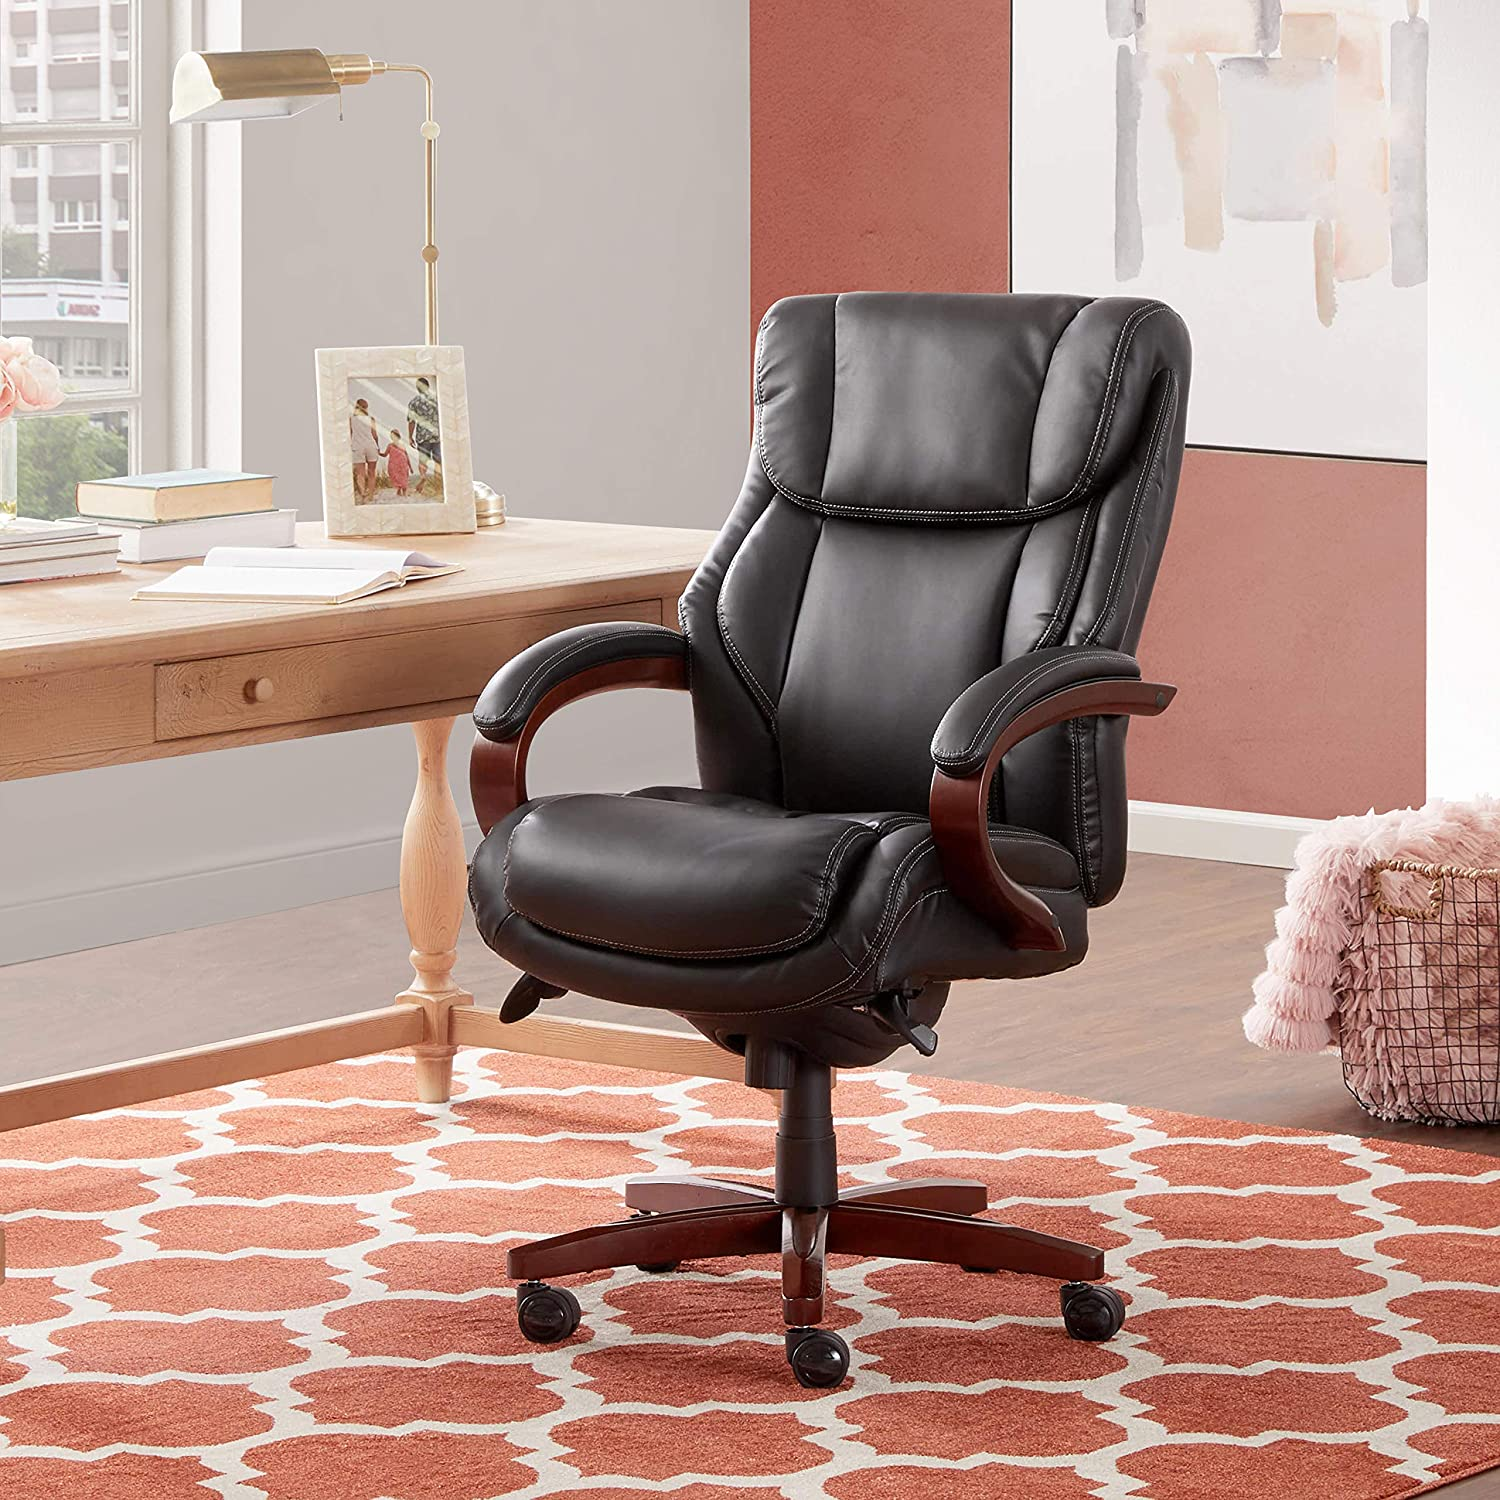 LaZBoy 45783A La-Z-Boy Bellamy Chair Traditions Office, Executive, Black